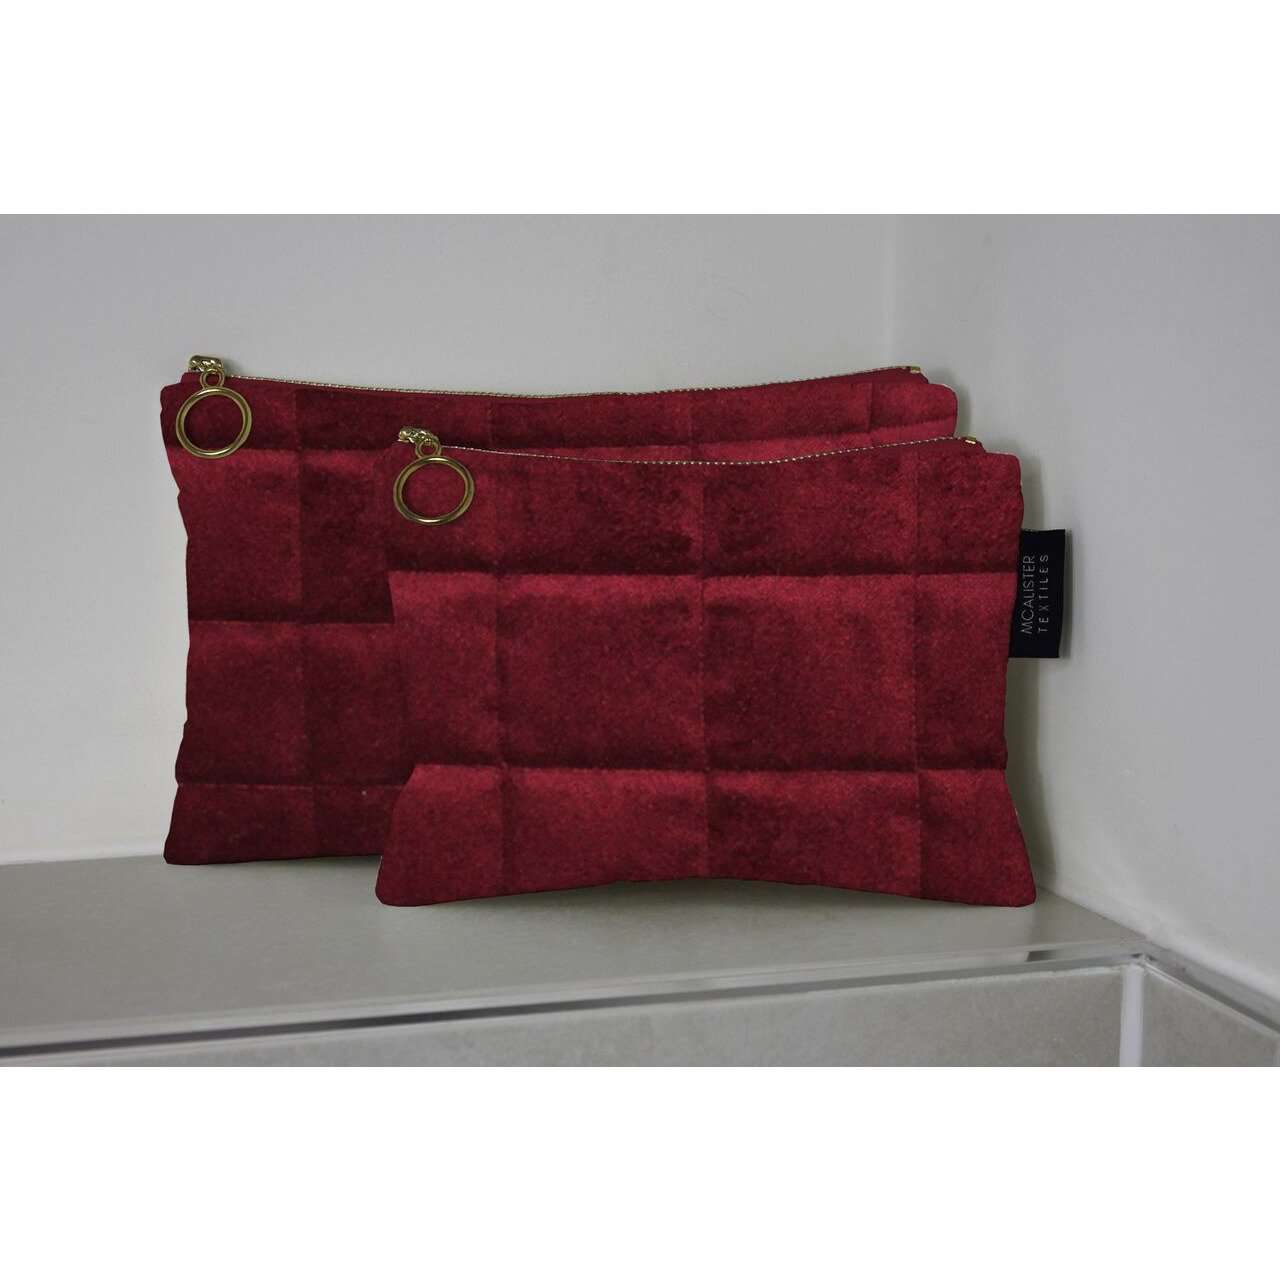 McAlister Textiles Square Pattern Red Velvet Makeup Bag - Large Clutch Bag